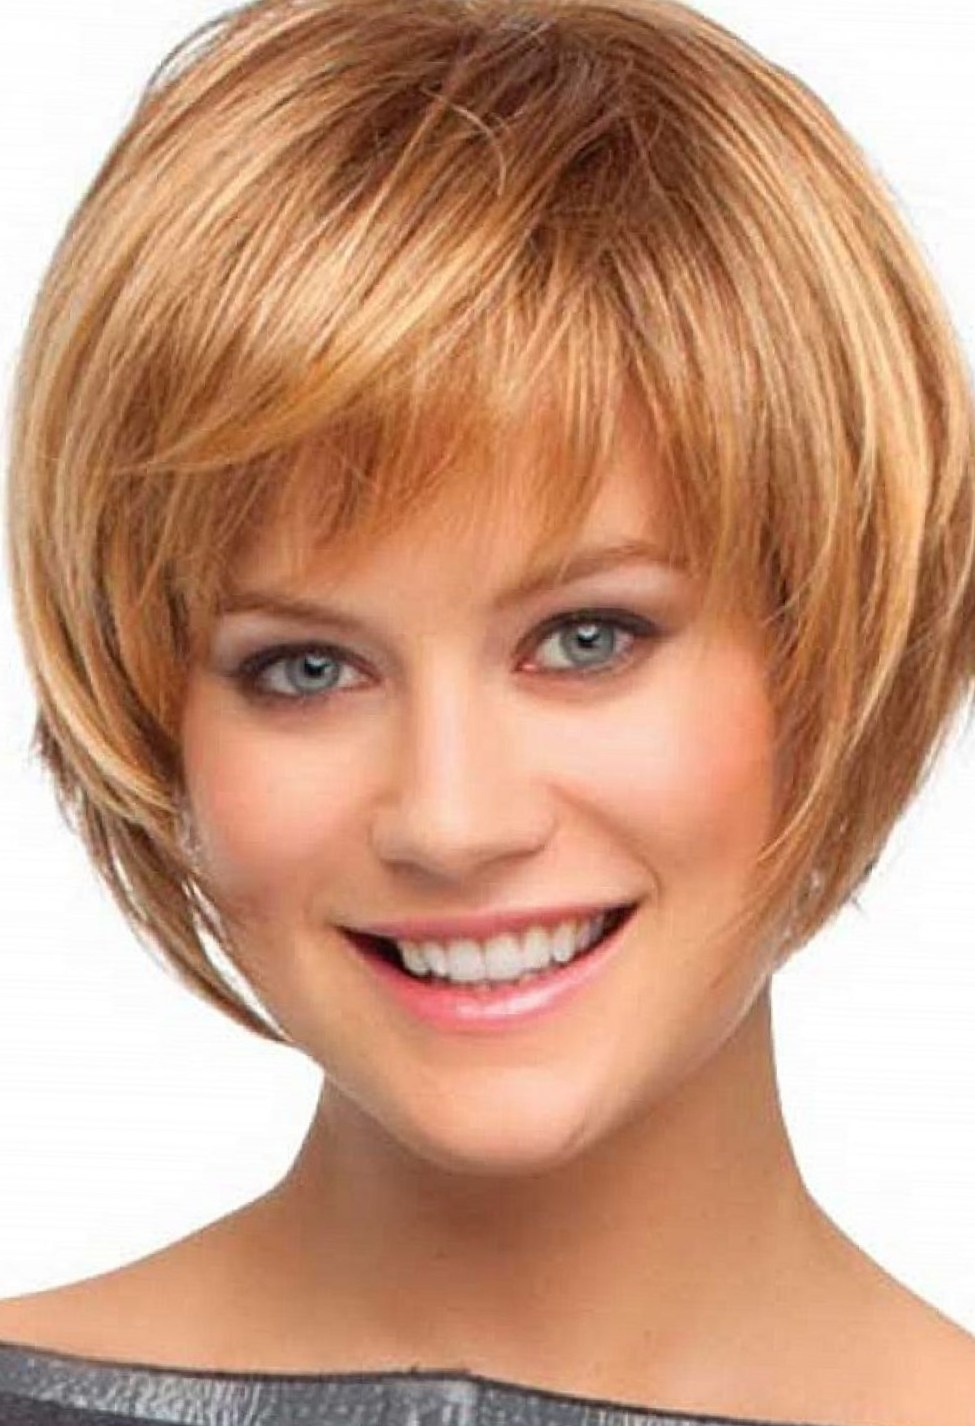 Pleasing Short Bob Hairstyles With Bangs 4 Perfect Ideas For You Talk Hairstyle Inspiration Daily Dogsangcom